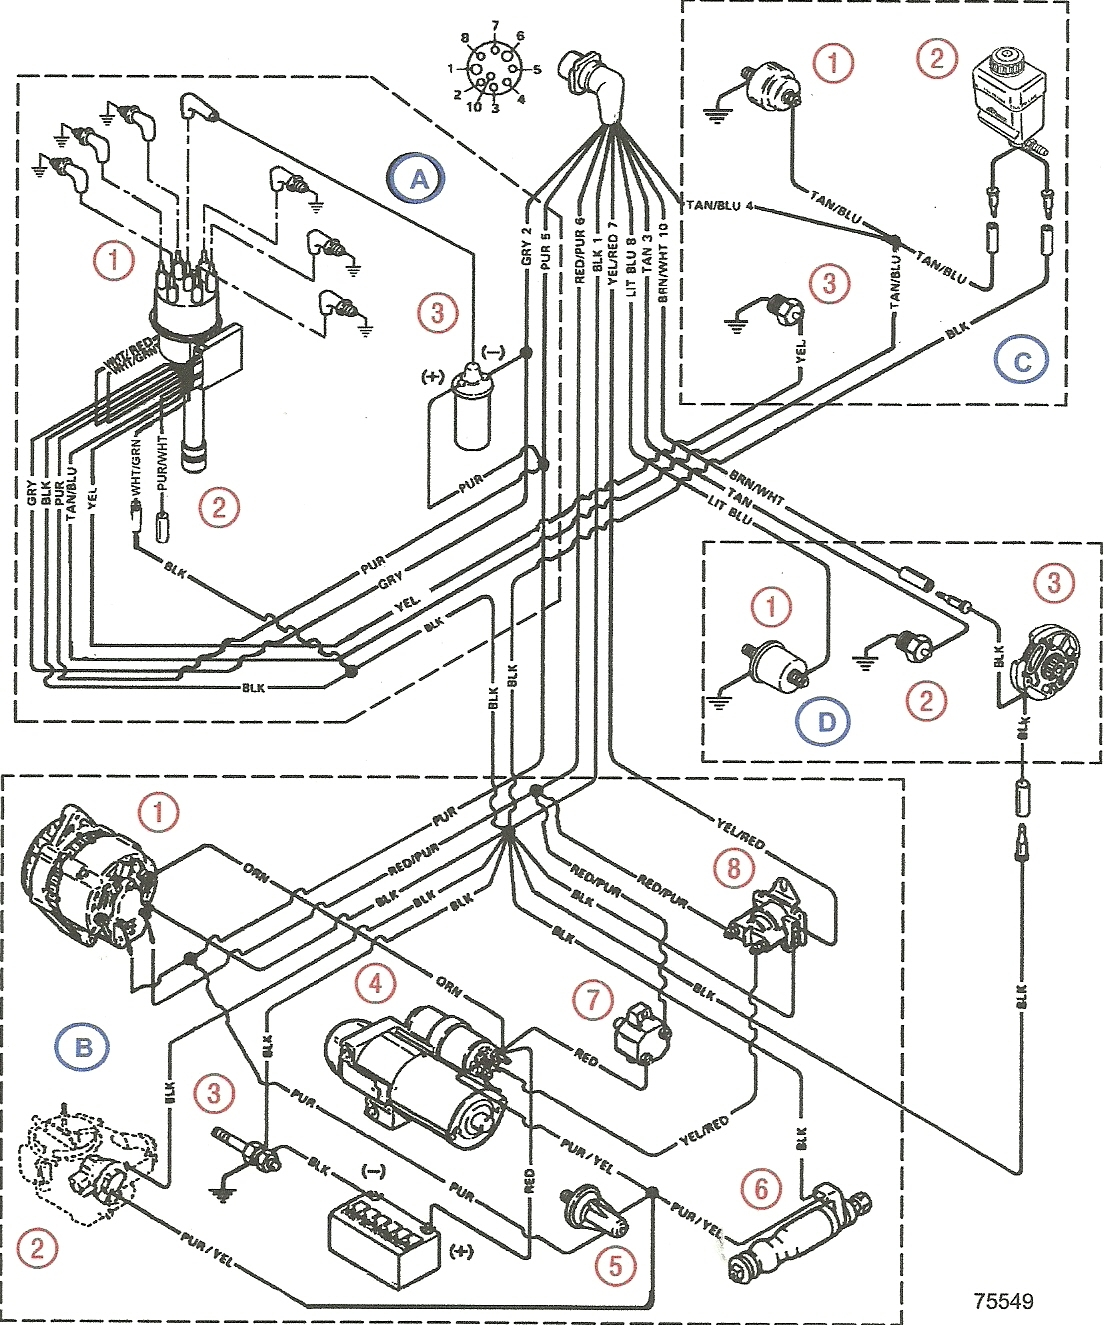 3 0 Mercruiser Wiring Diagram - Wiring Diagram Liry  Hp Mercruiser Engine Diagram on 165 hp mercruiser engine diagram, 220 hp mercruiser engine diagram, mccormick xtx 185 wire diagram,